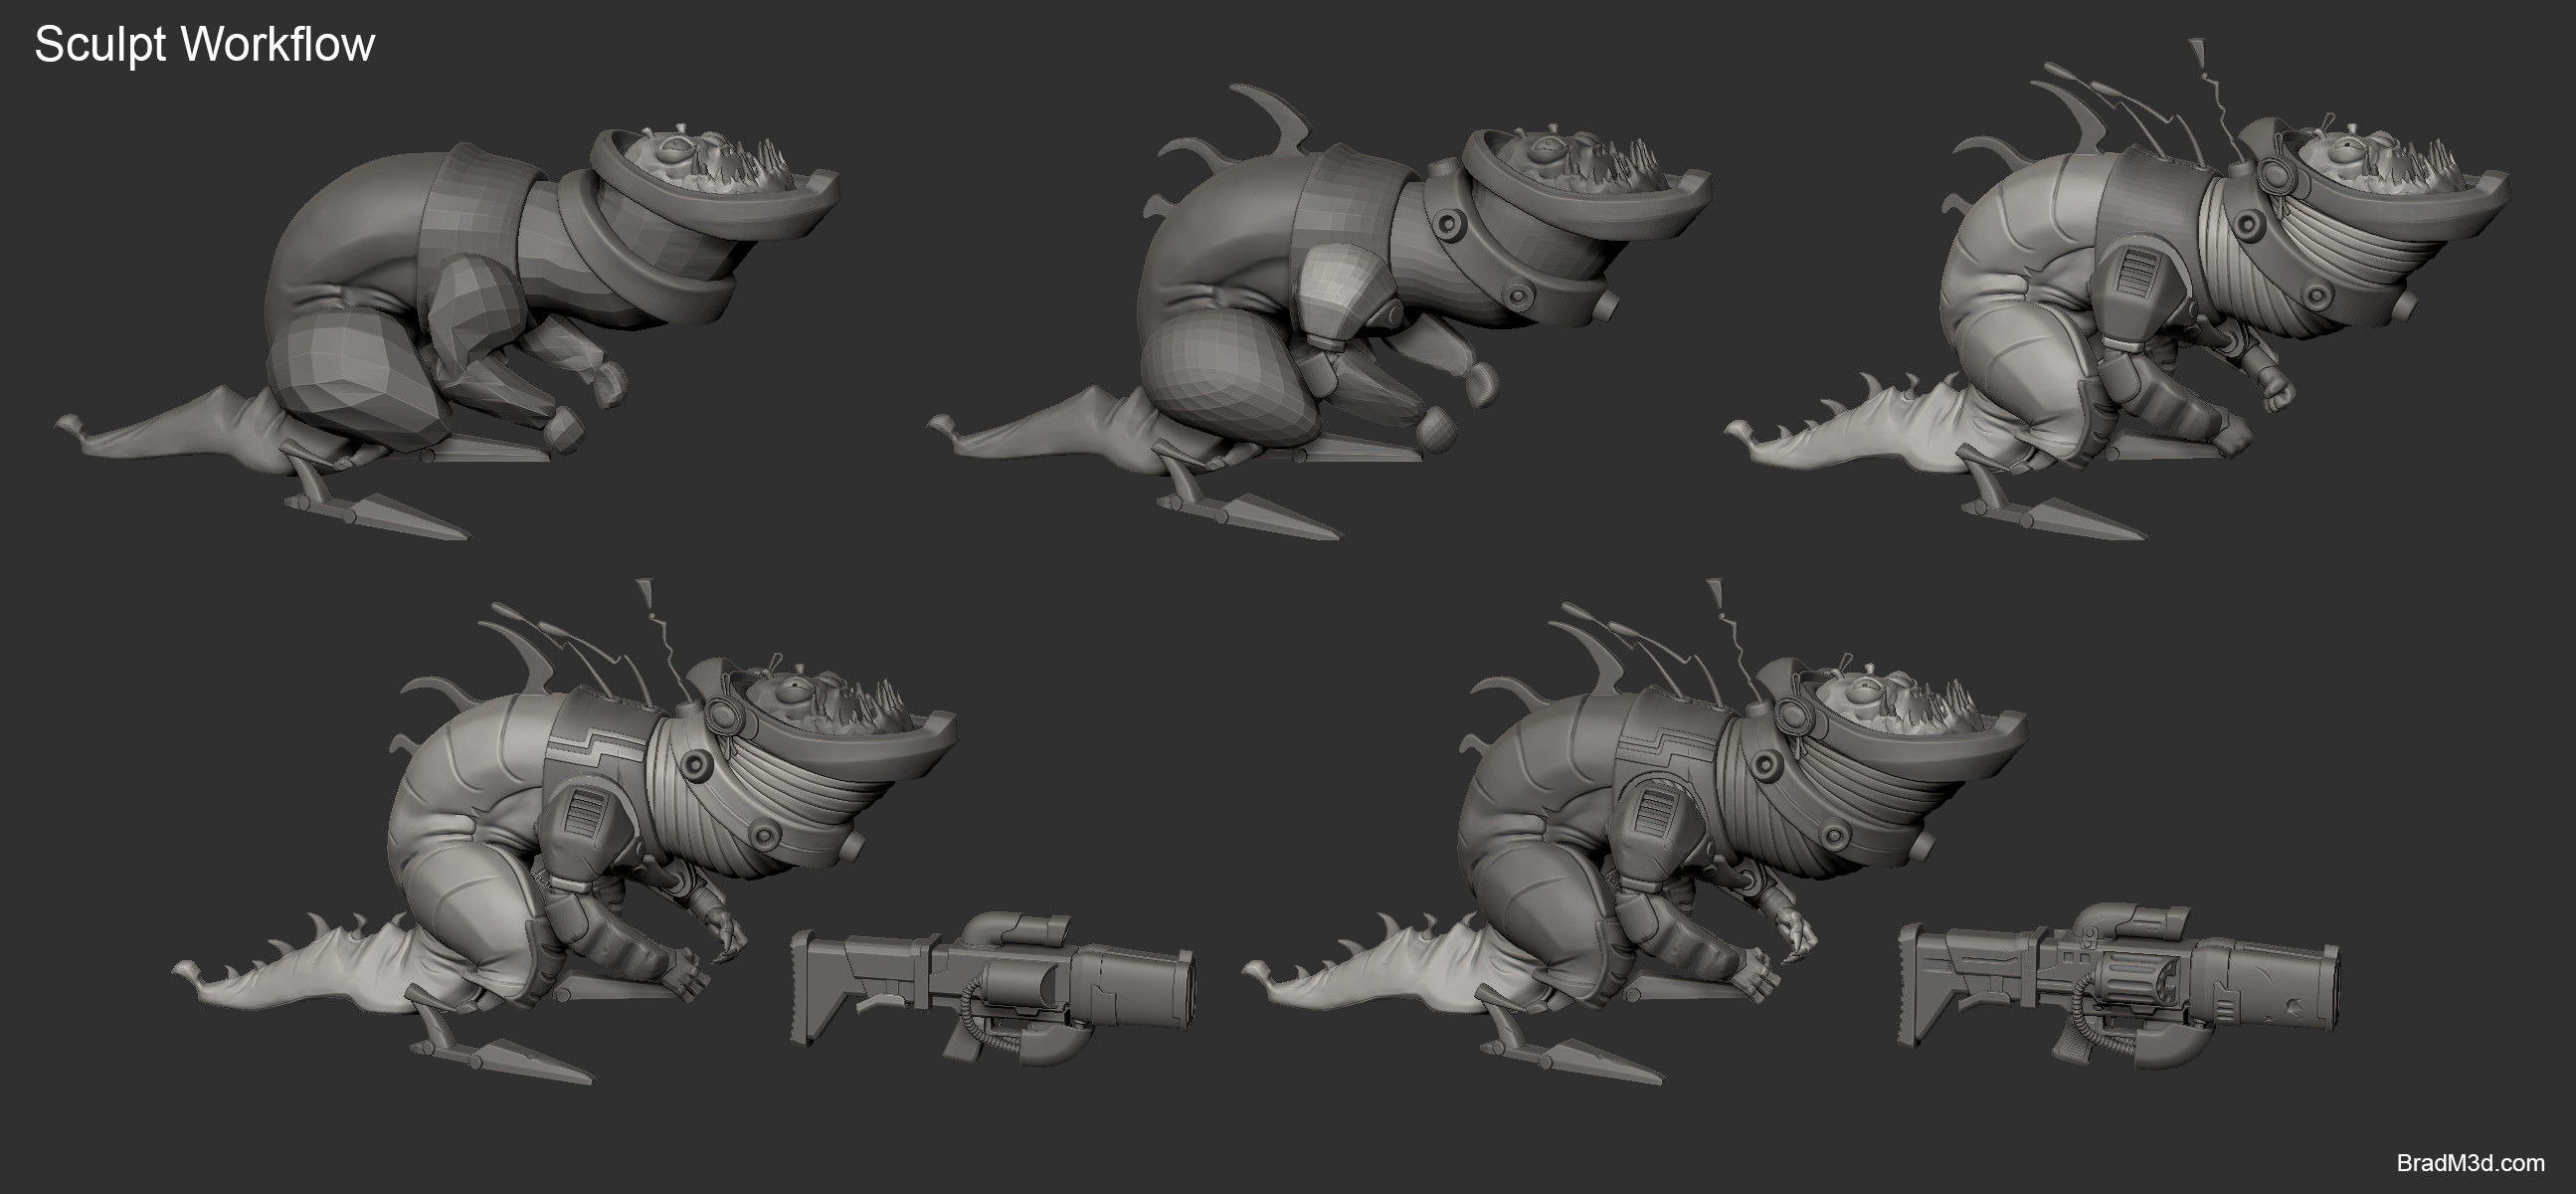 Zbrush: High Poly_Workflow